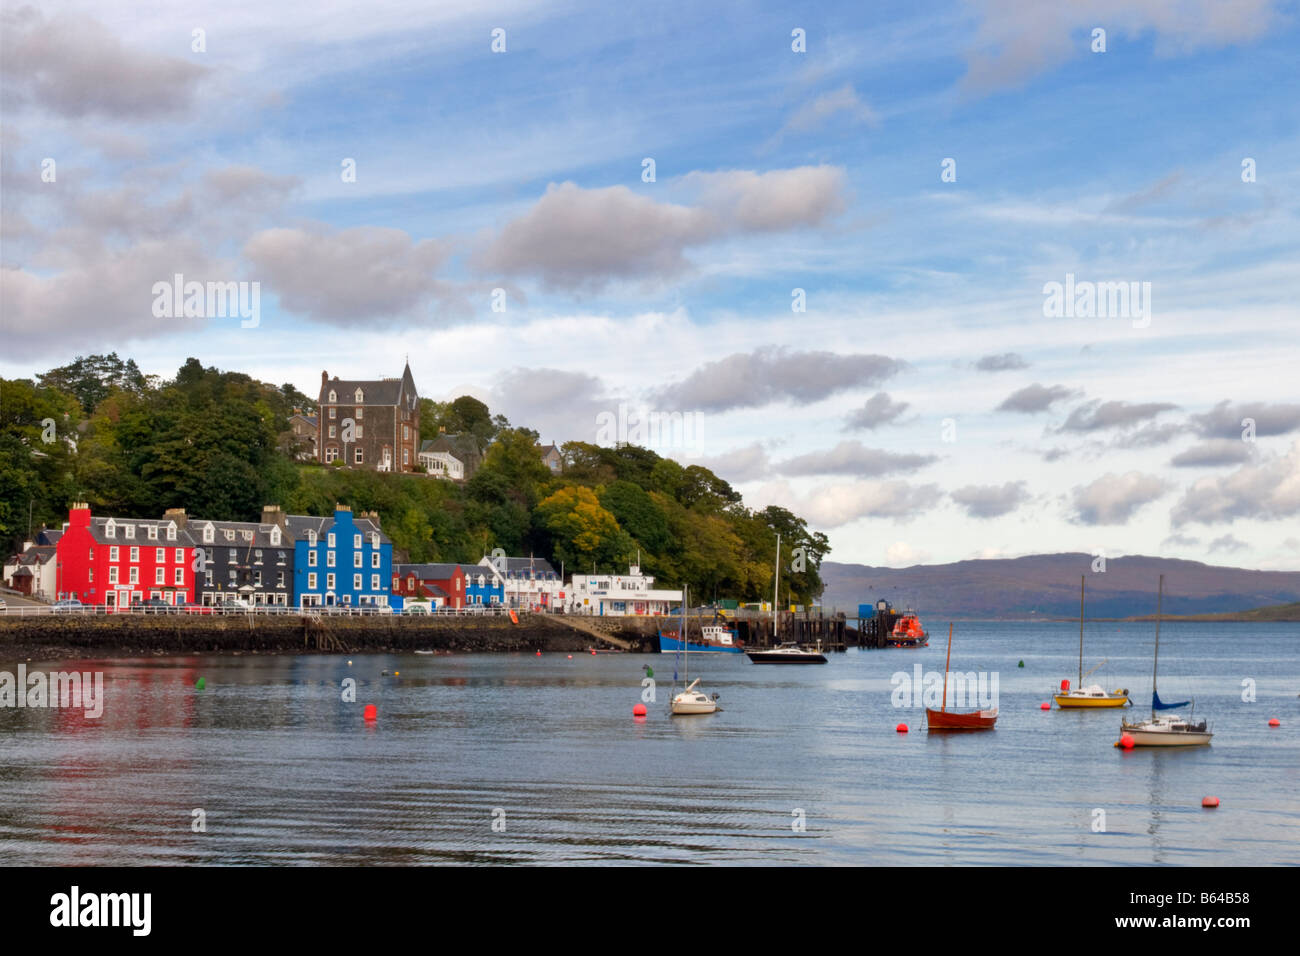 Sea front and harbourside of Tobermory, Isle of Mull, Scotland taken on a bright but cloudy day - Stock Image